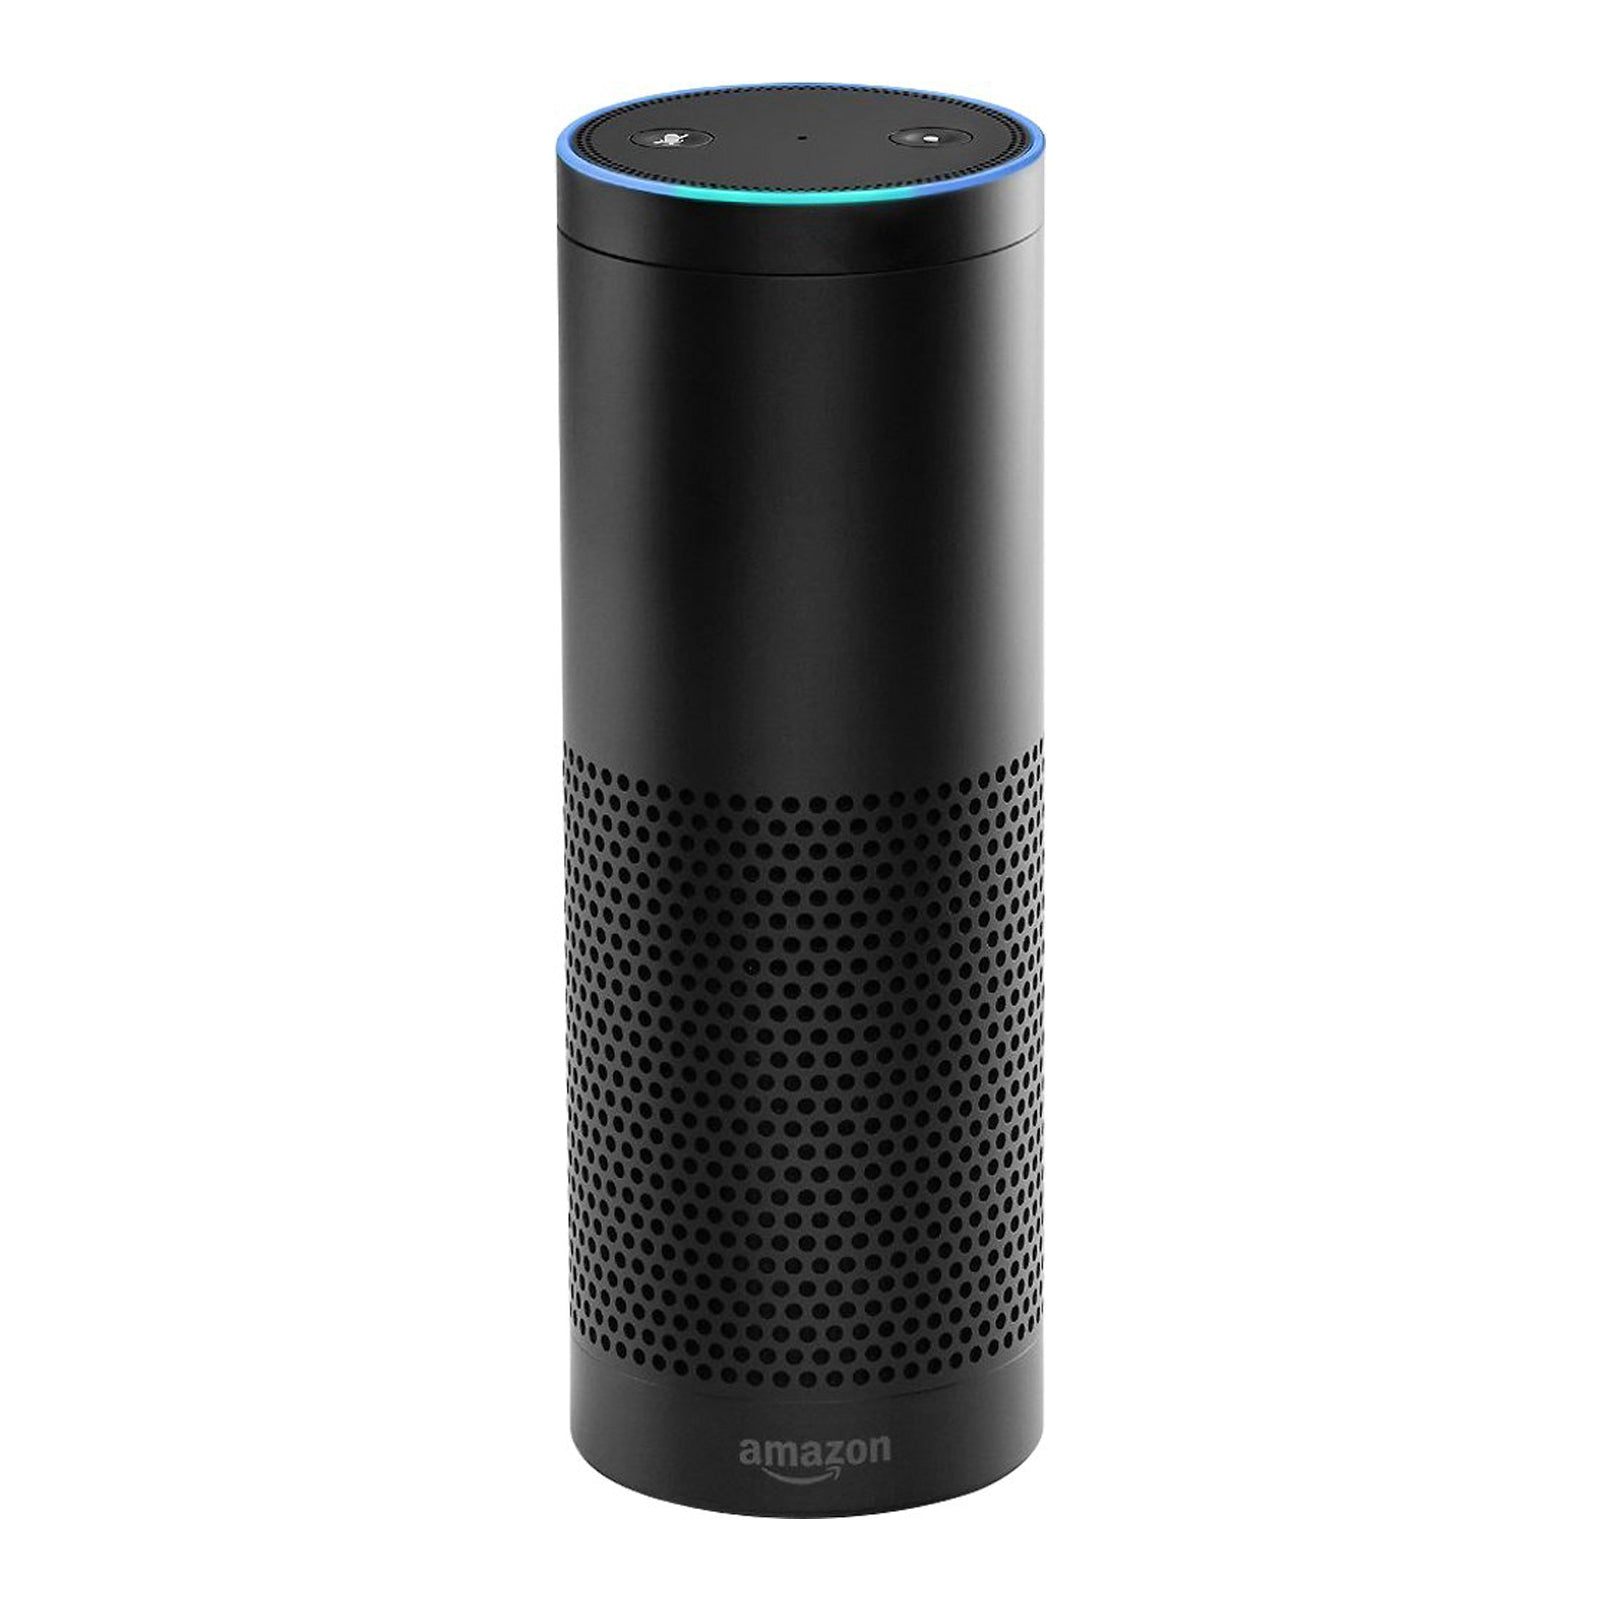 Amazon Echo Smart Speaker - (Black)